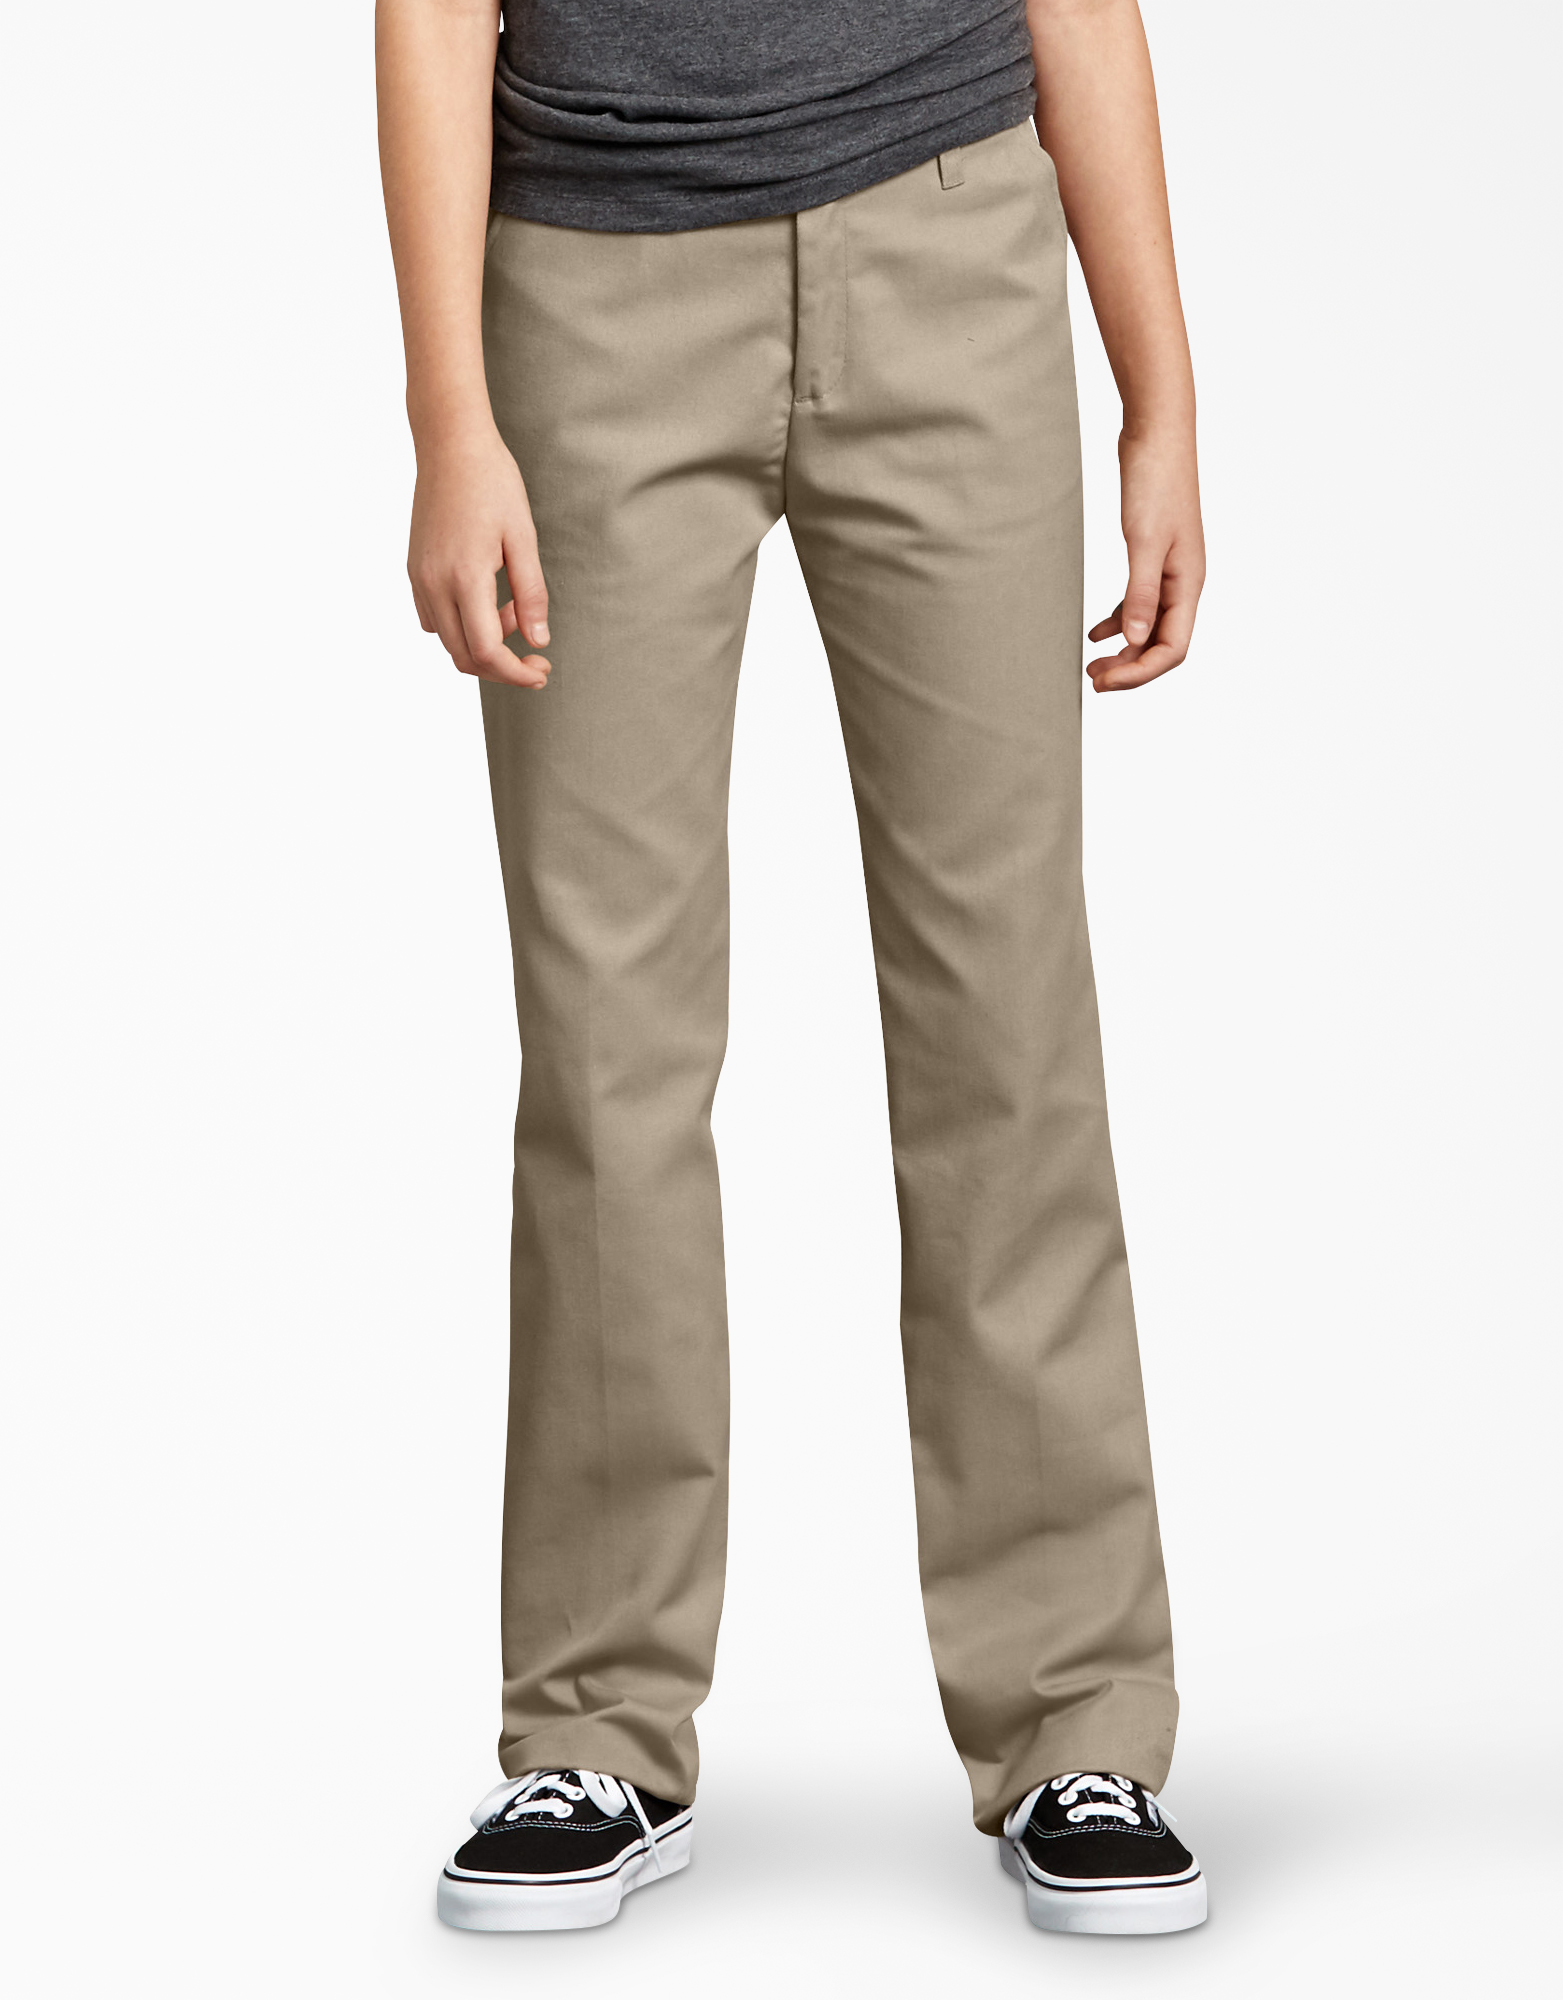 Girls' FlexWaist® Slim Fit Straight Leg Flat Front Pants, 4-16 - Desert Khaki (DS)